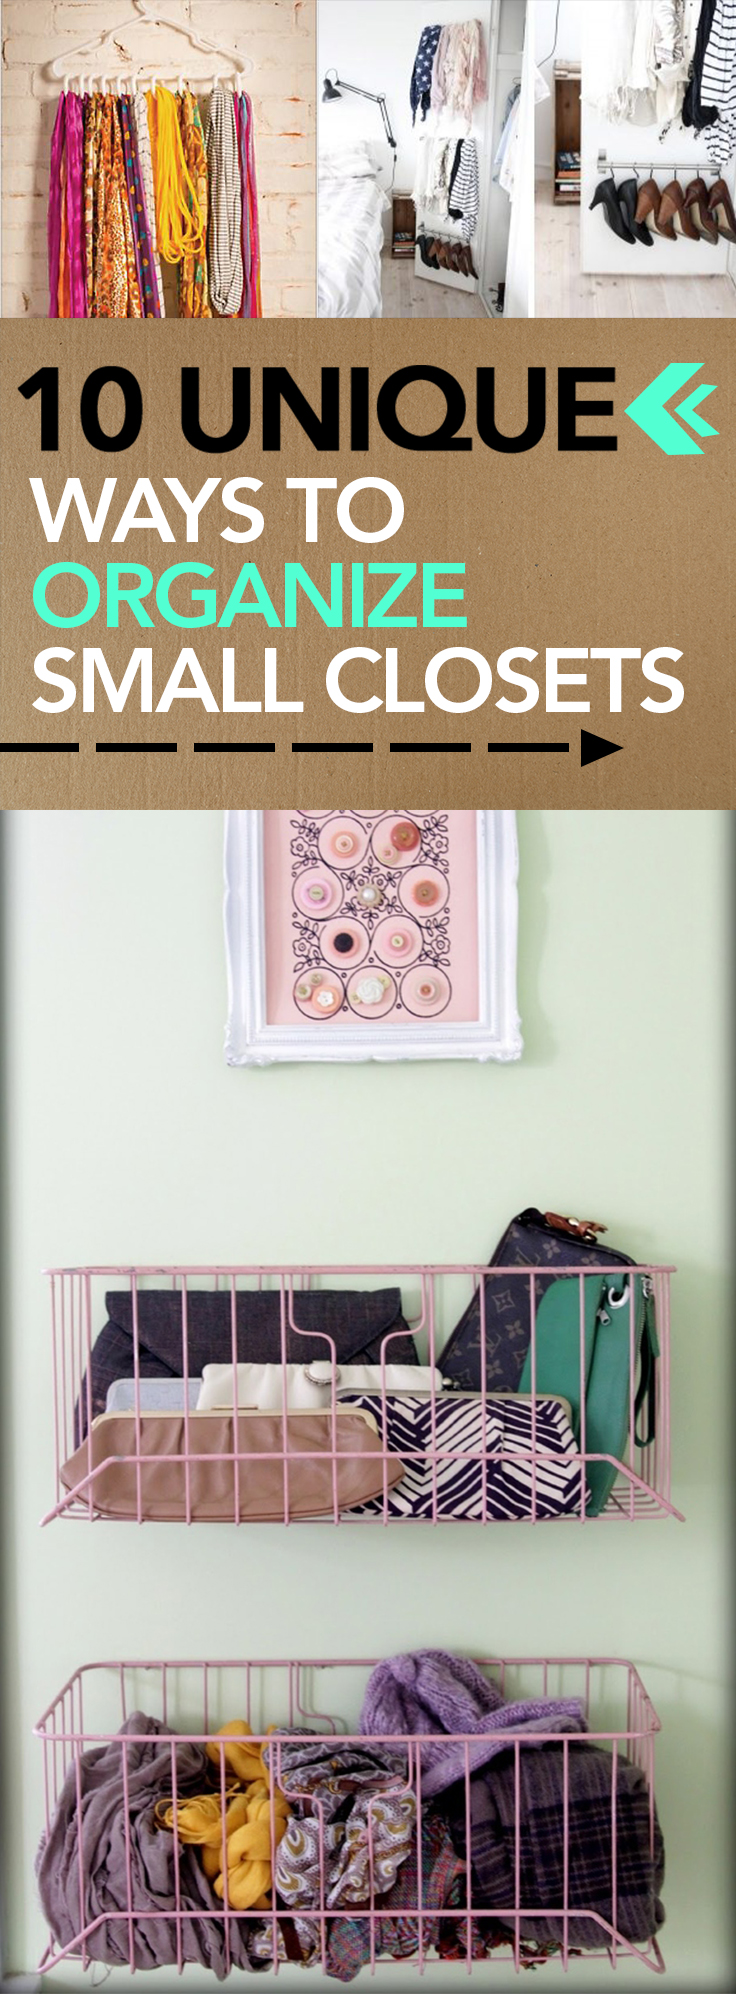 10 unique ways to organize small closets page 3 of 11 for How to organize a small room